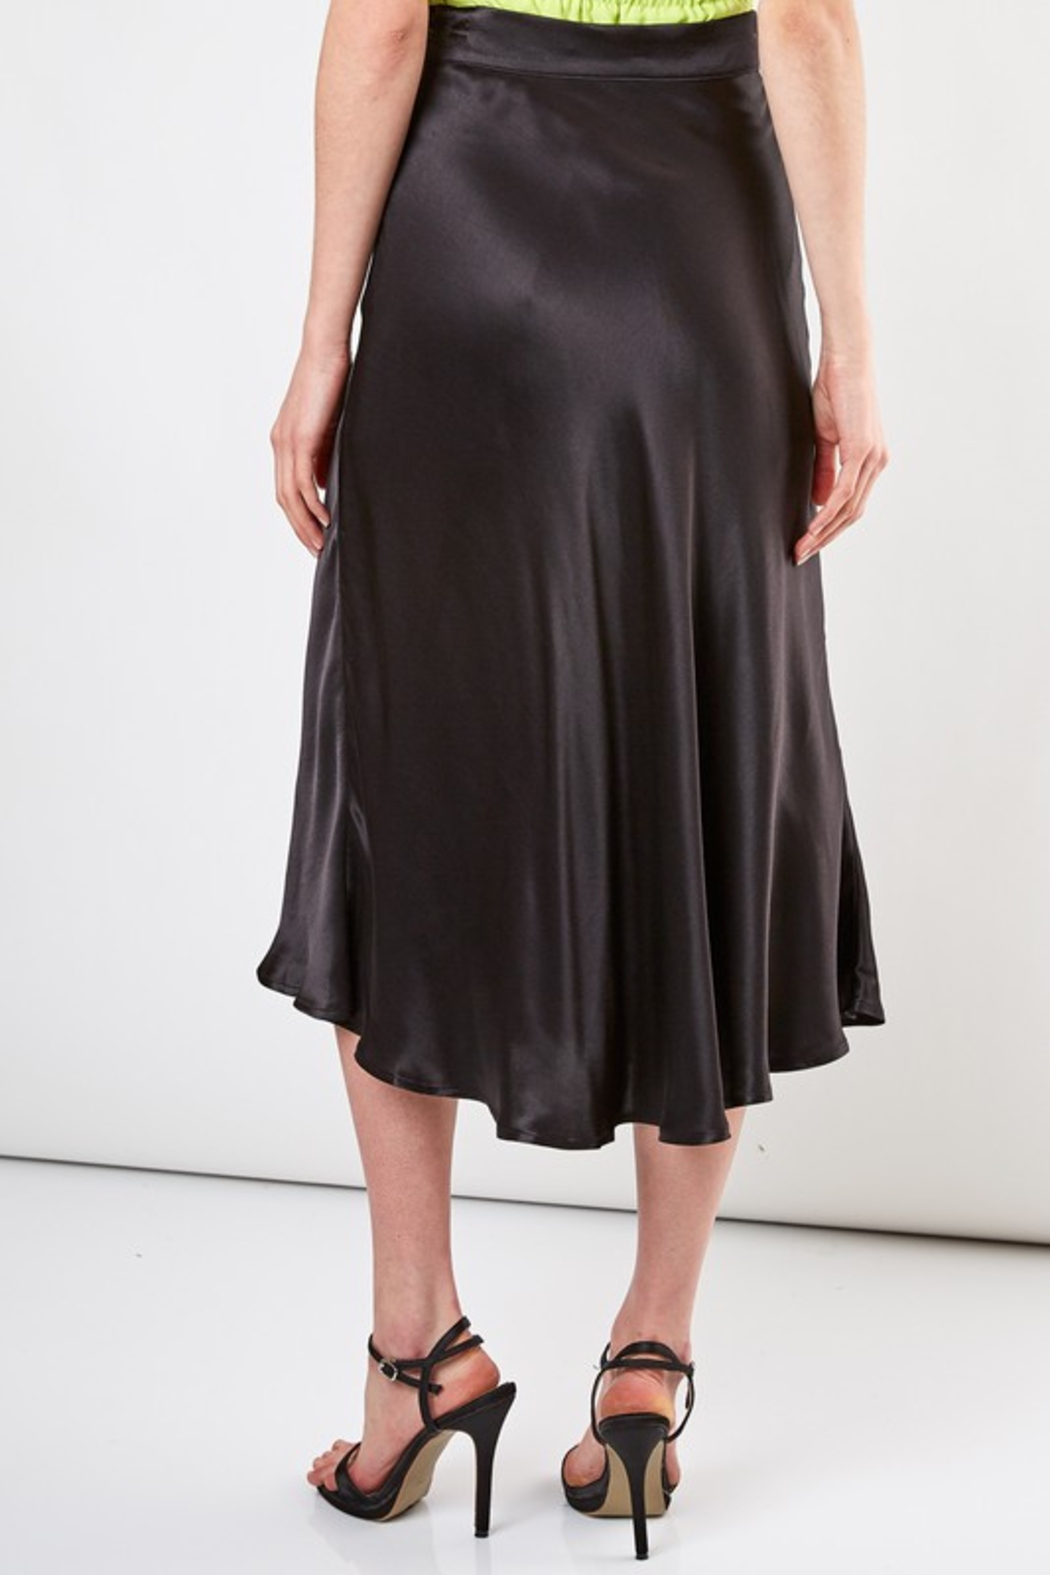 Do + Be  Flare MIdi Skirt - Side Cropped Image